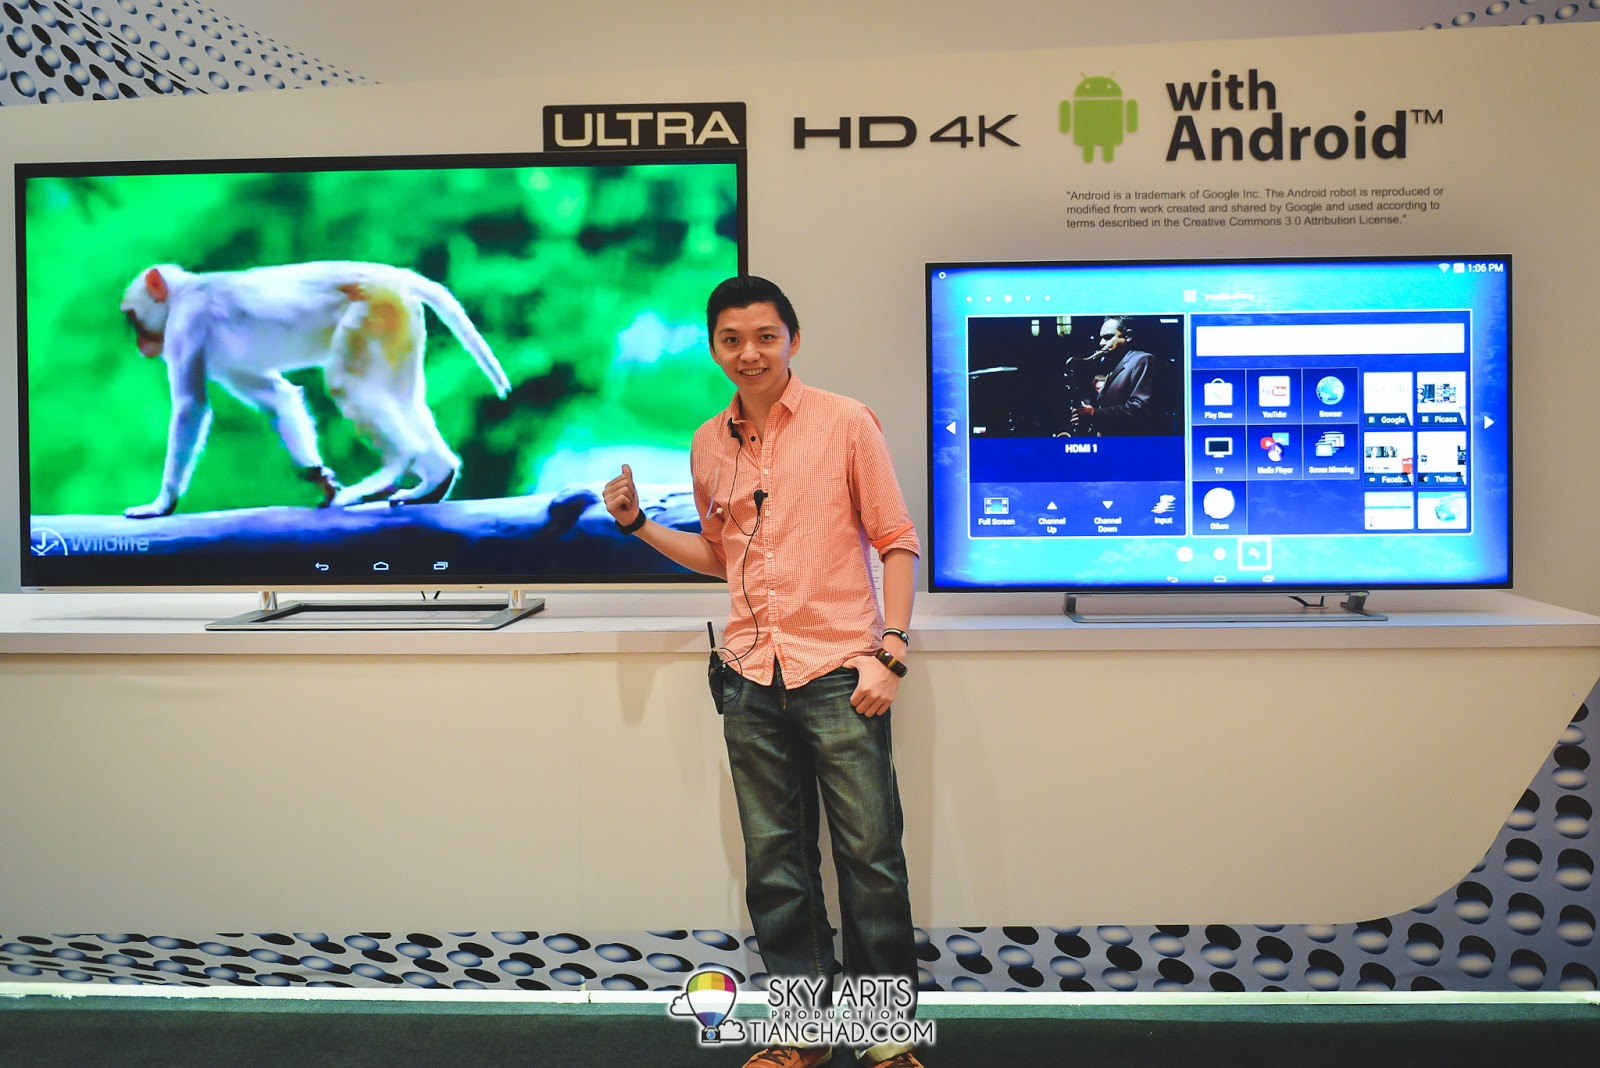 Check out that monkey butt on Toshiba 4K TV Screen haha